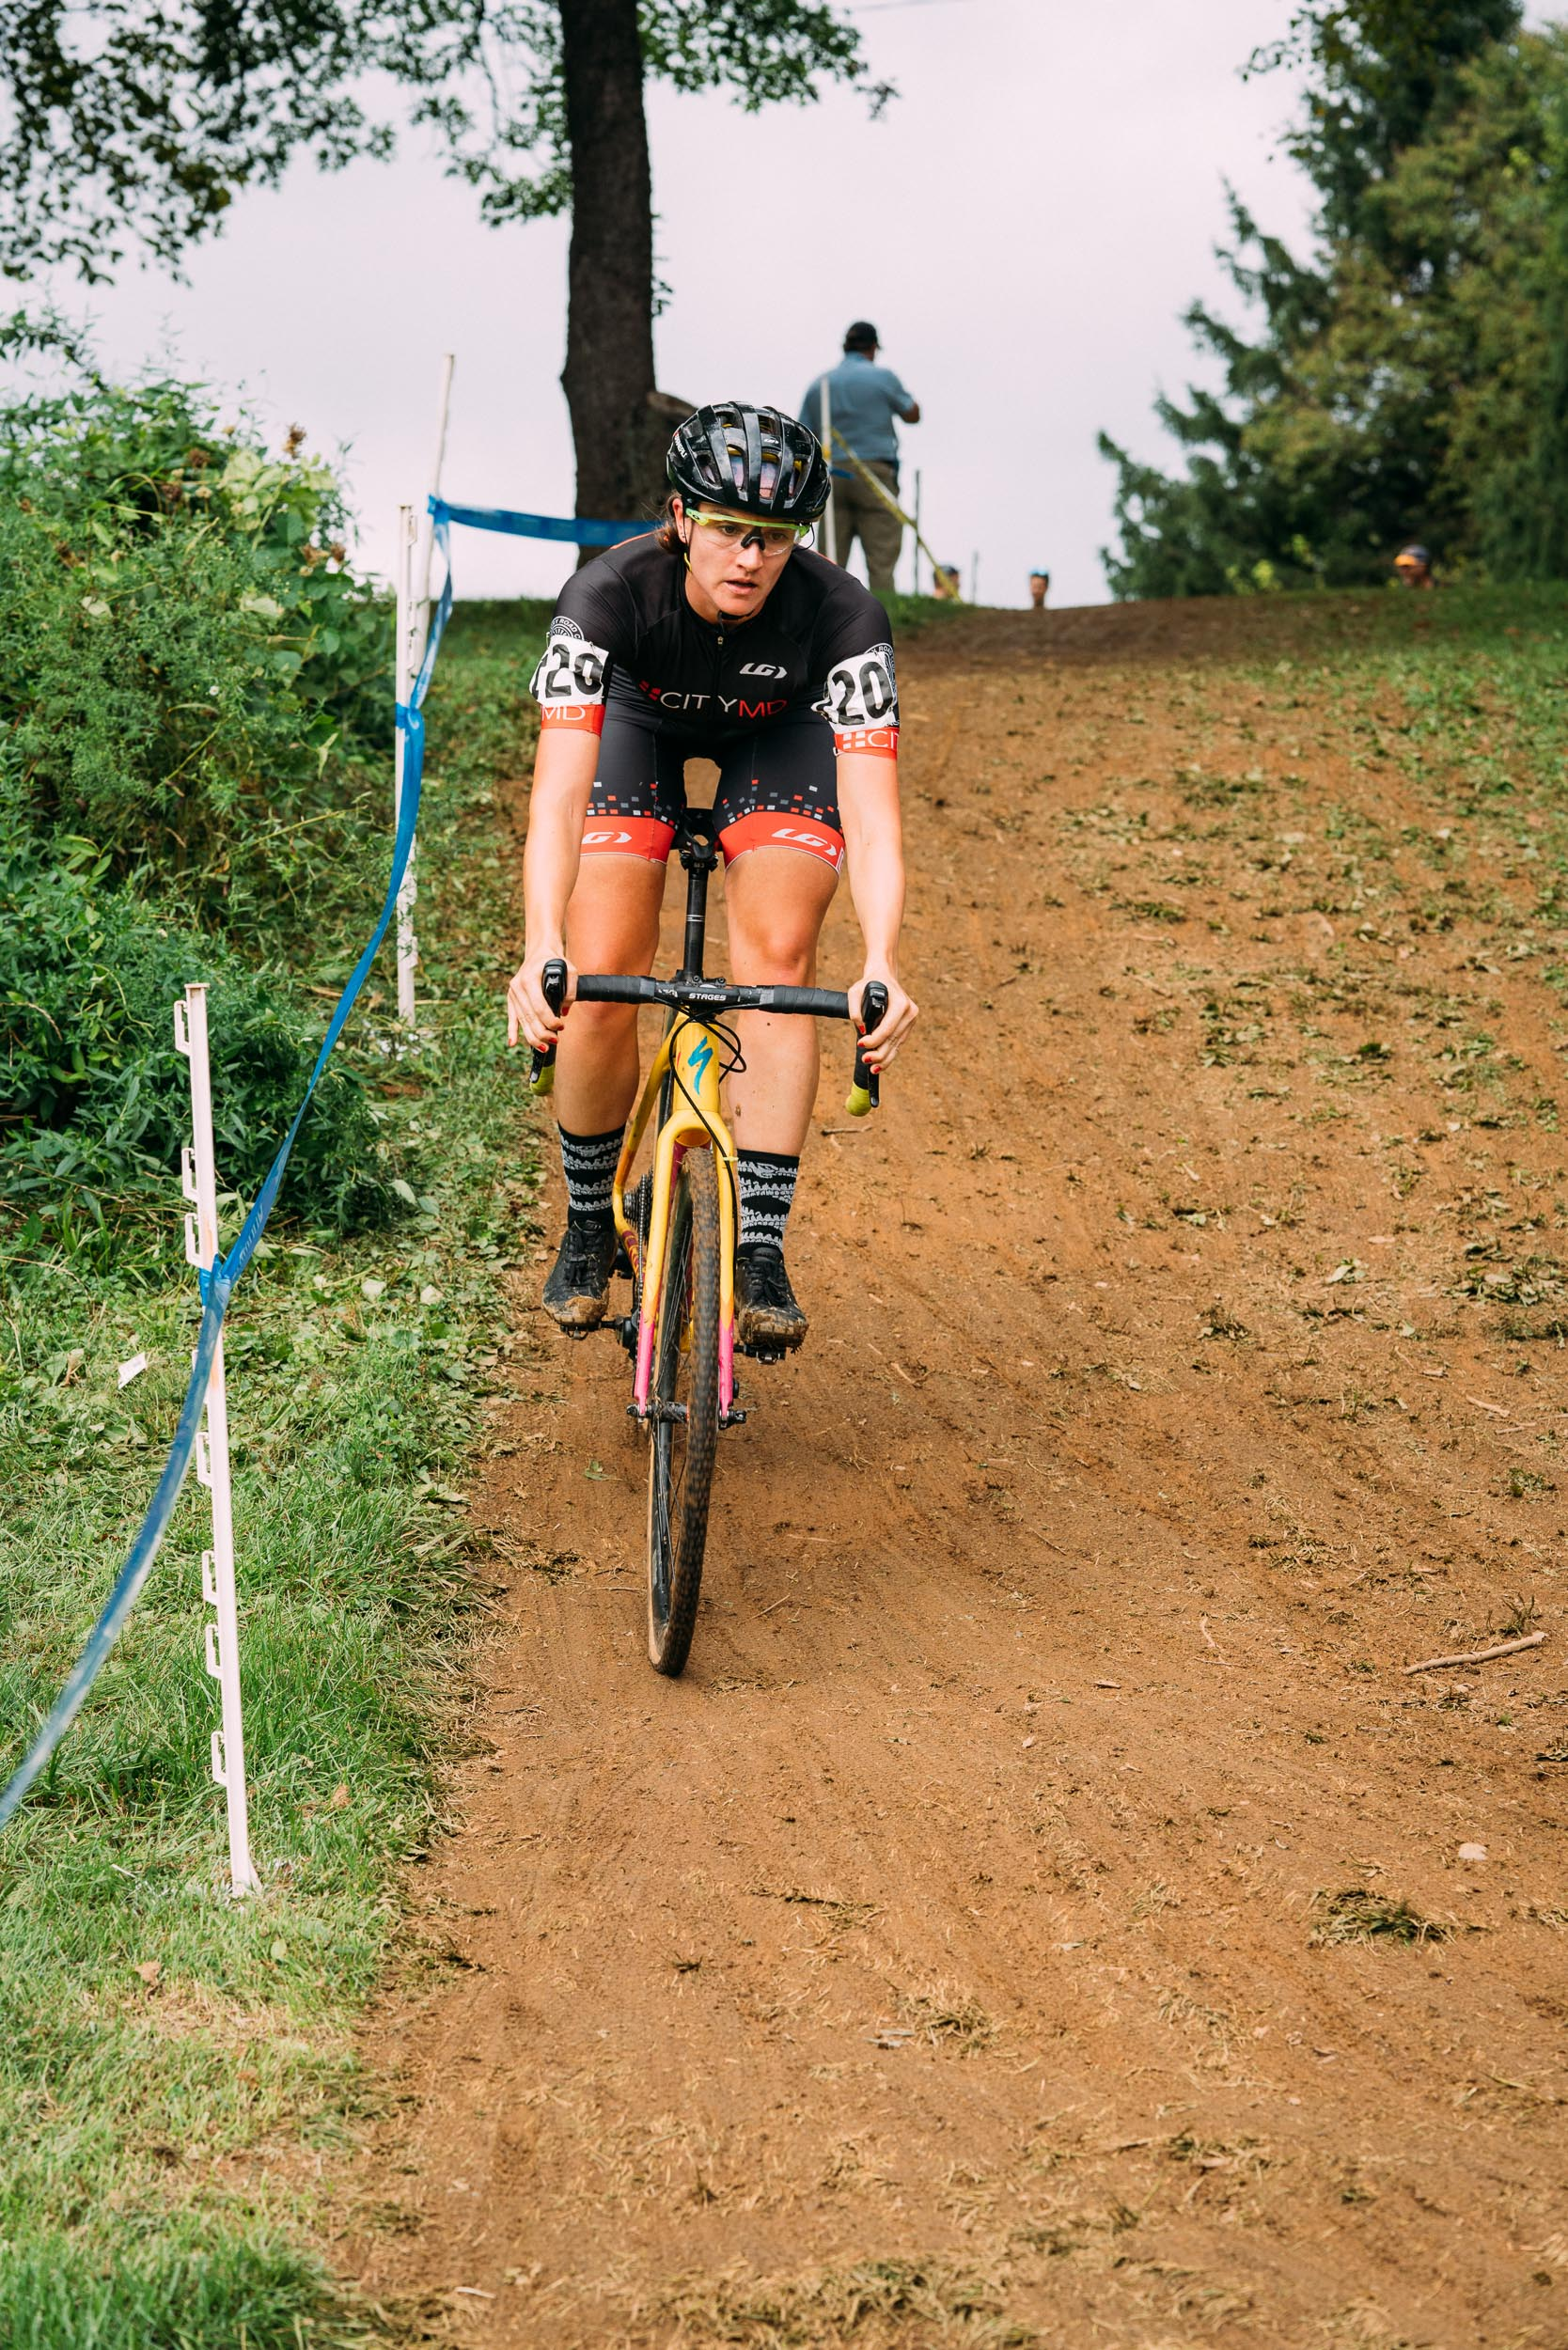 photo-rhetoric-to-be-determined-nittany-cyclocross-1118.jpg